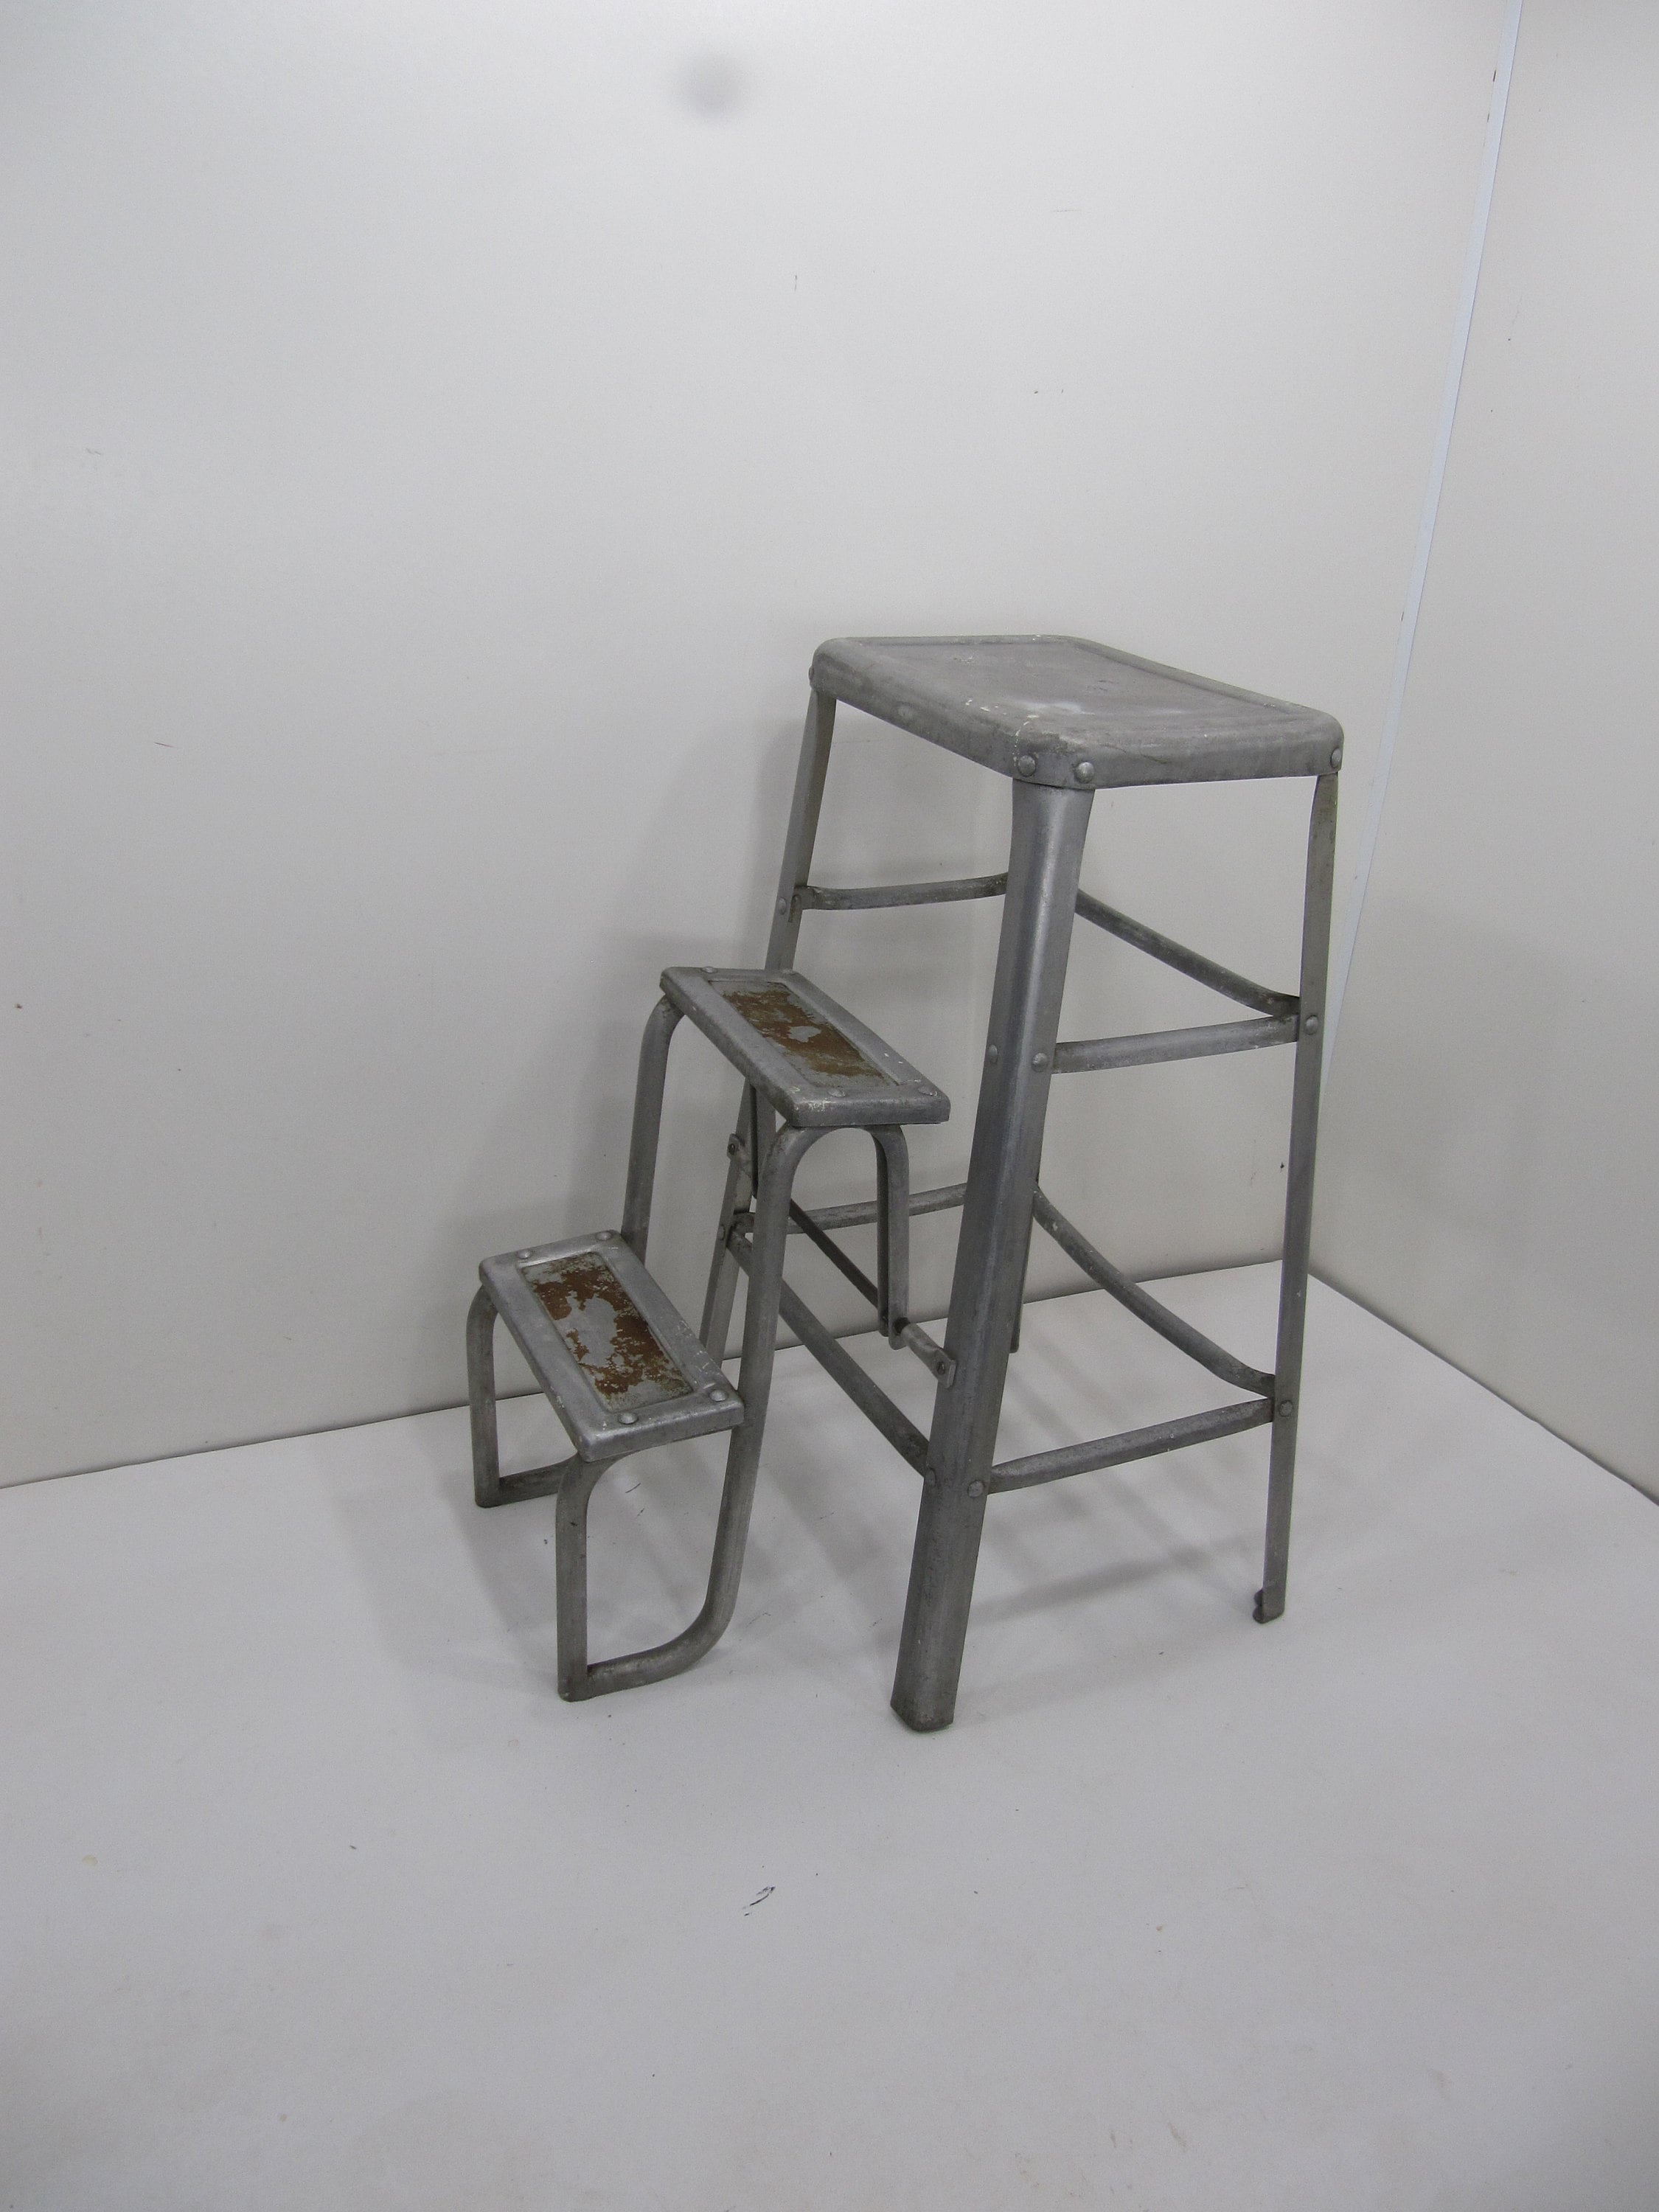 Metal Step Stool Vintage Aluminum Step Stool Farmhouse Metal Step Stool Industrial Stool With Fold Out Steps